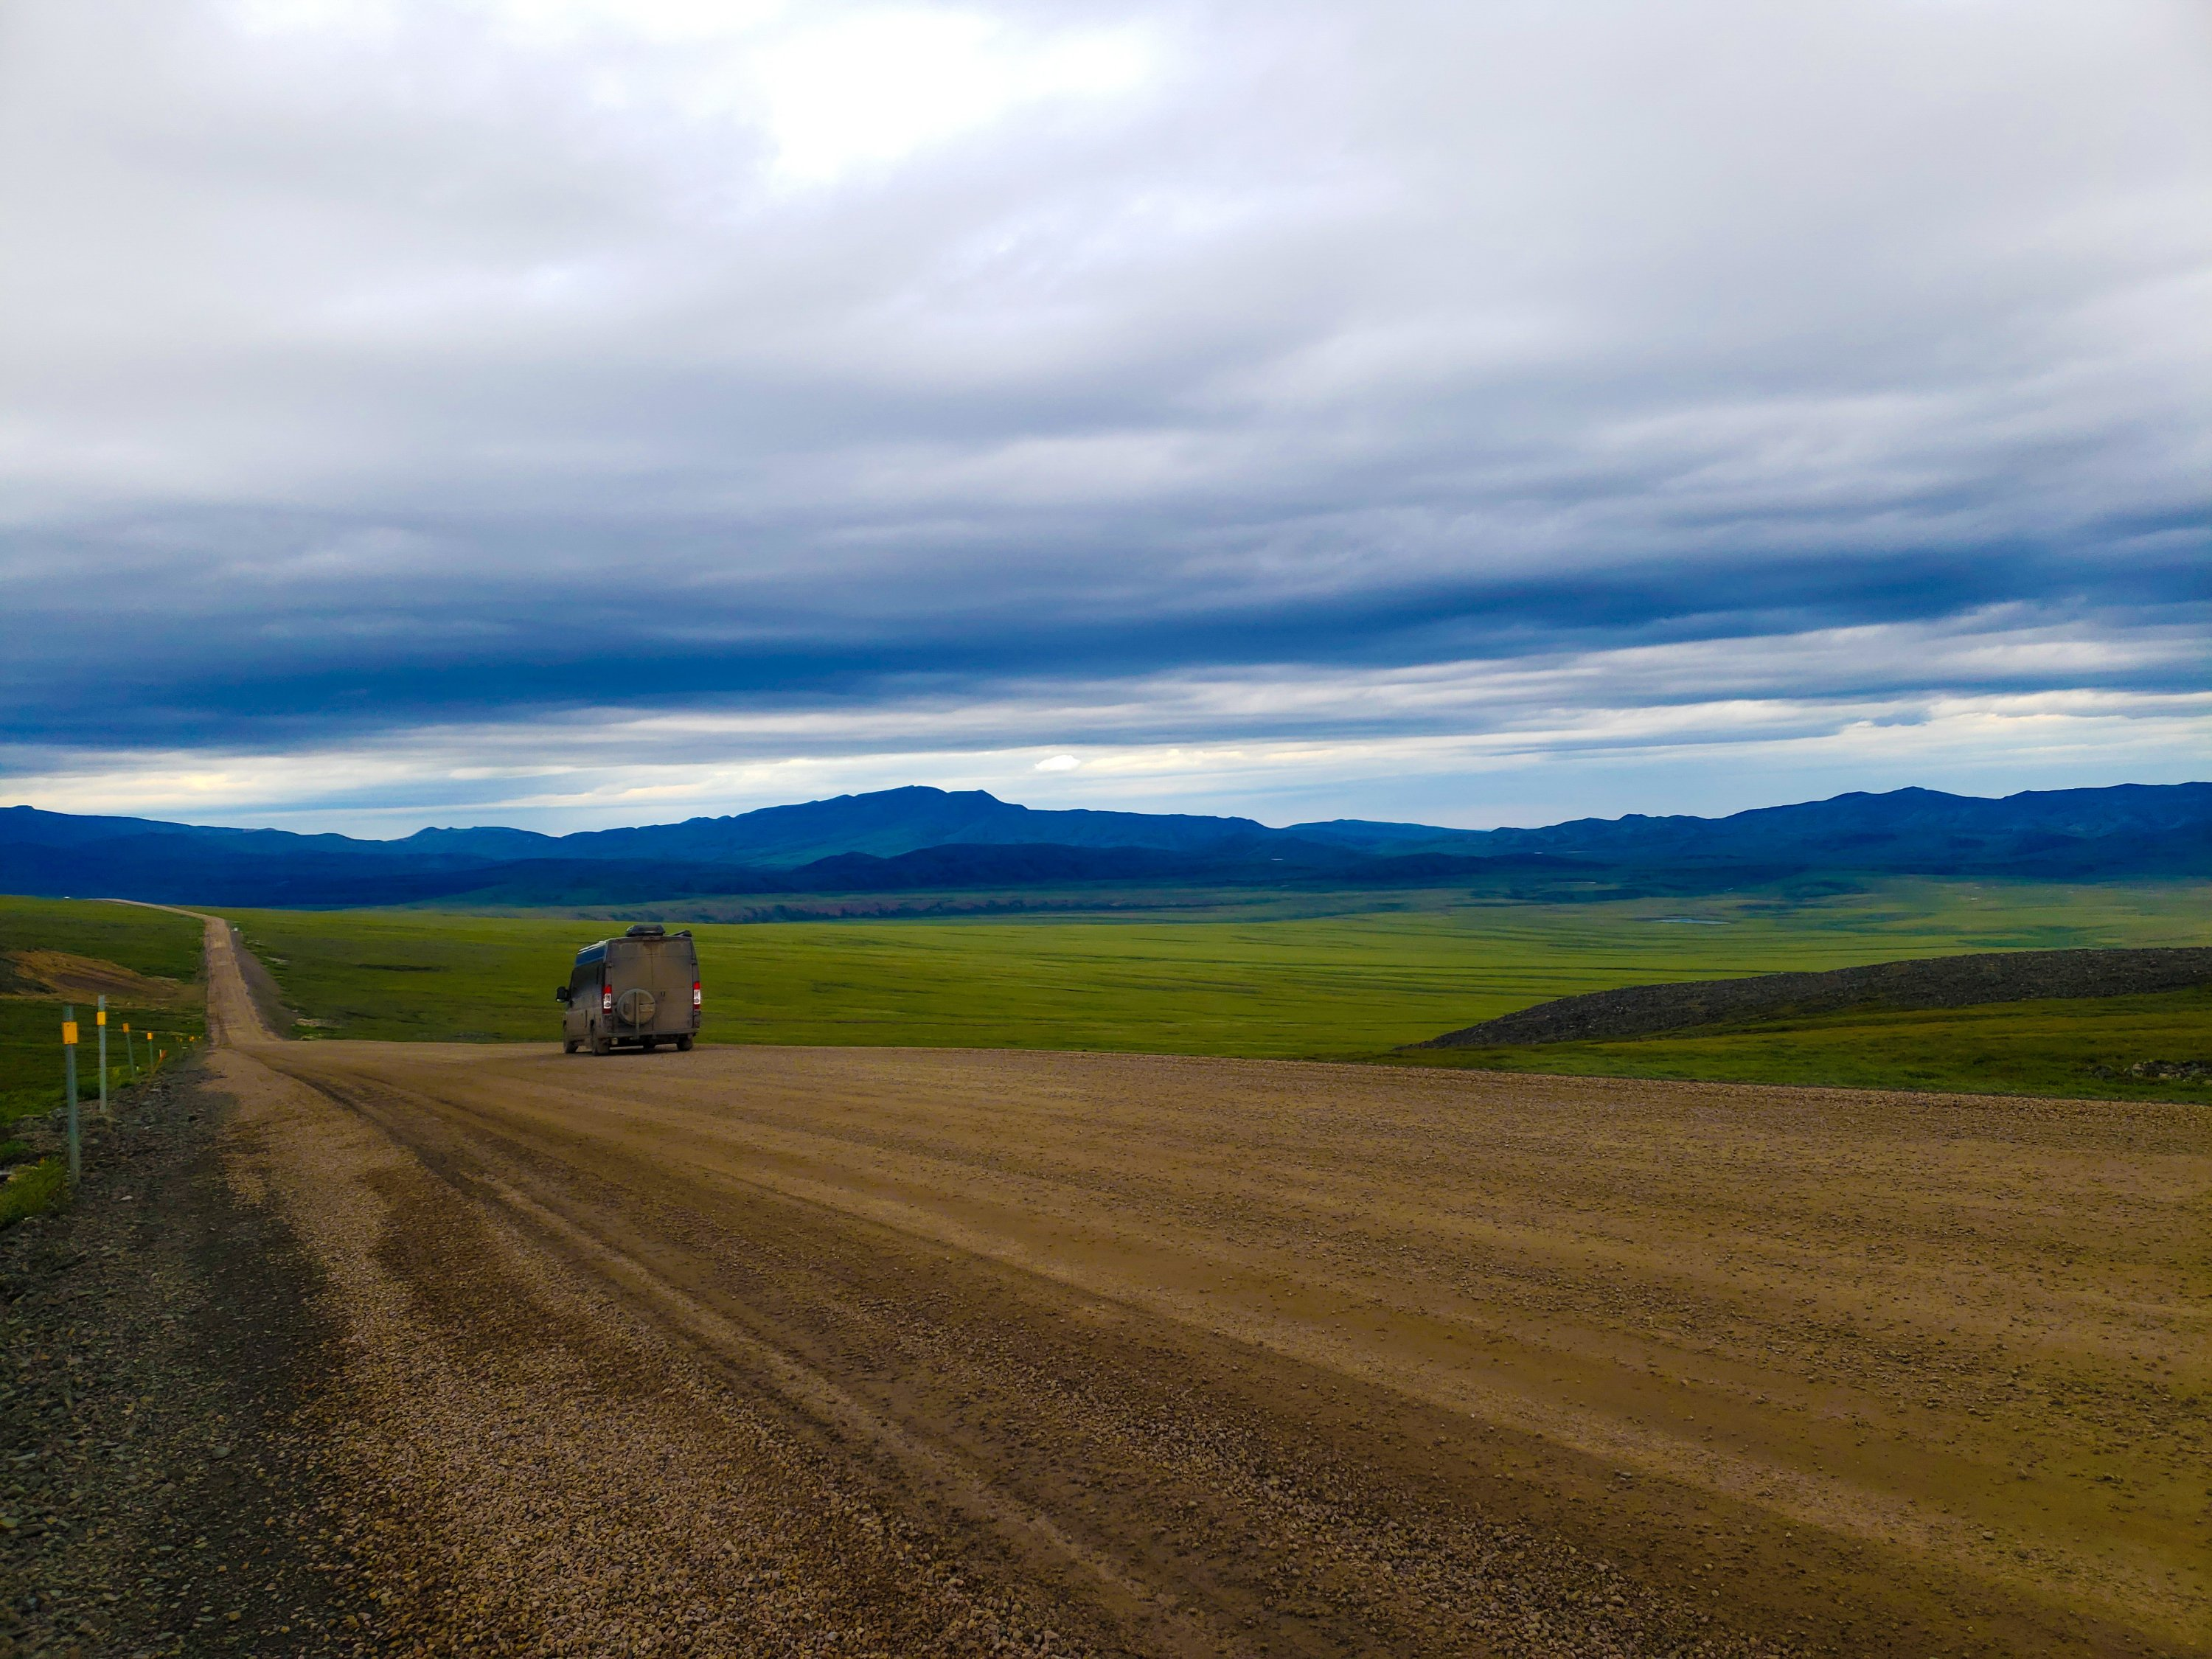 Dempster Highway, driving to Tuktoyaktuk, Northwest Territories, travel guide, vanlife travel, full time travel, off the beaten trail, epic roadtrips